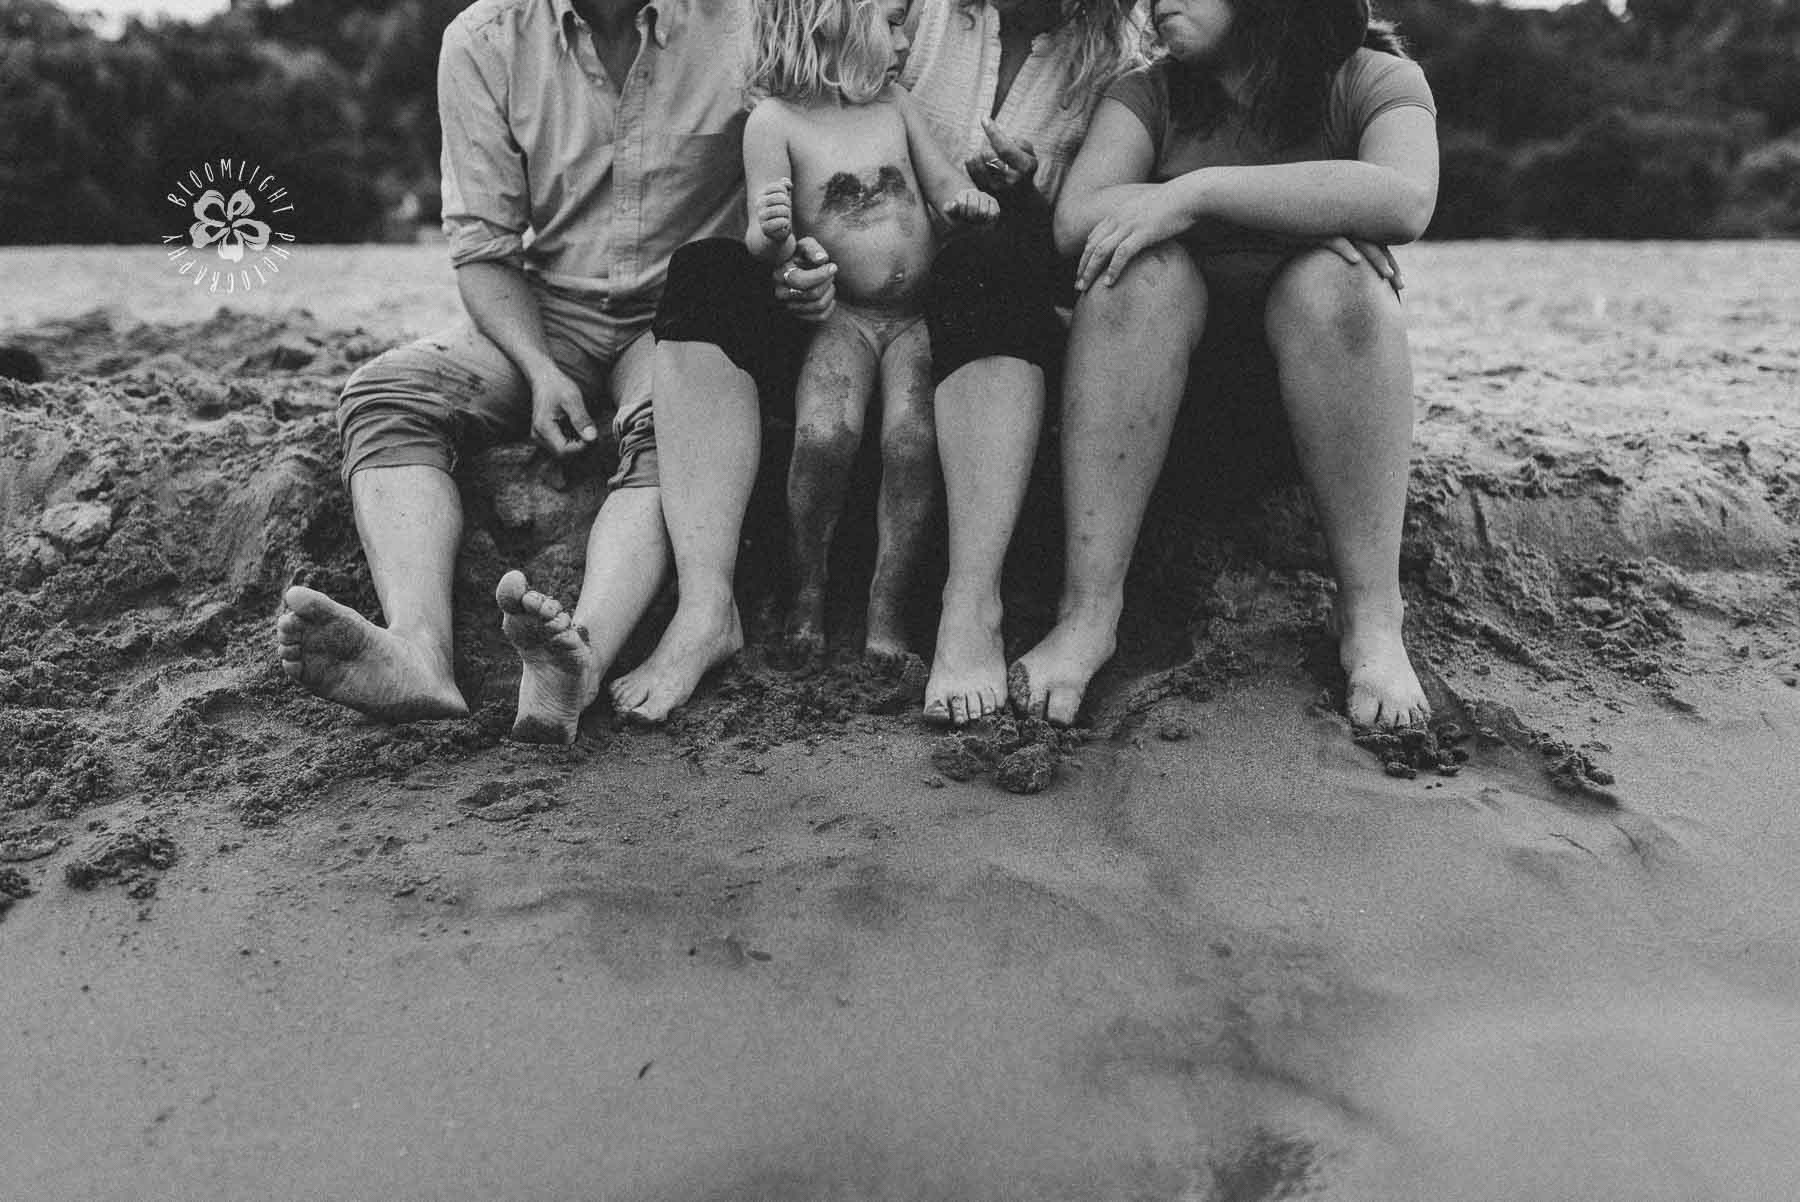 uncensored-real-family-time-Toronto-beaches-Lifestyle-Photography.JPG